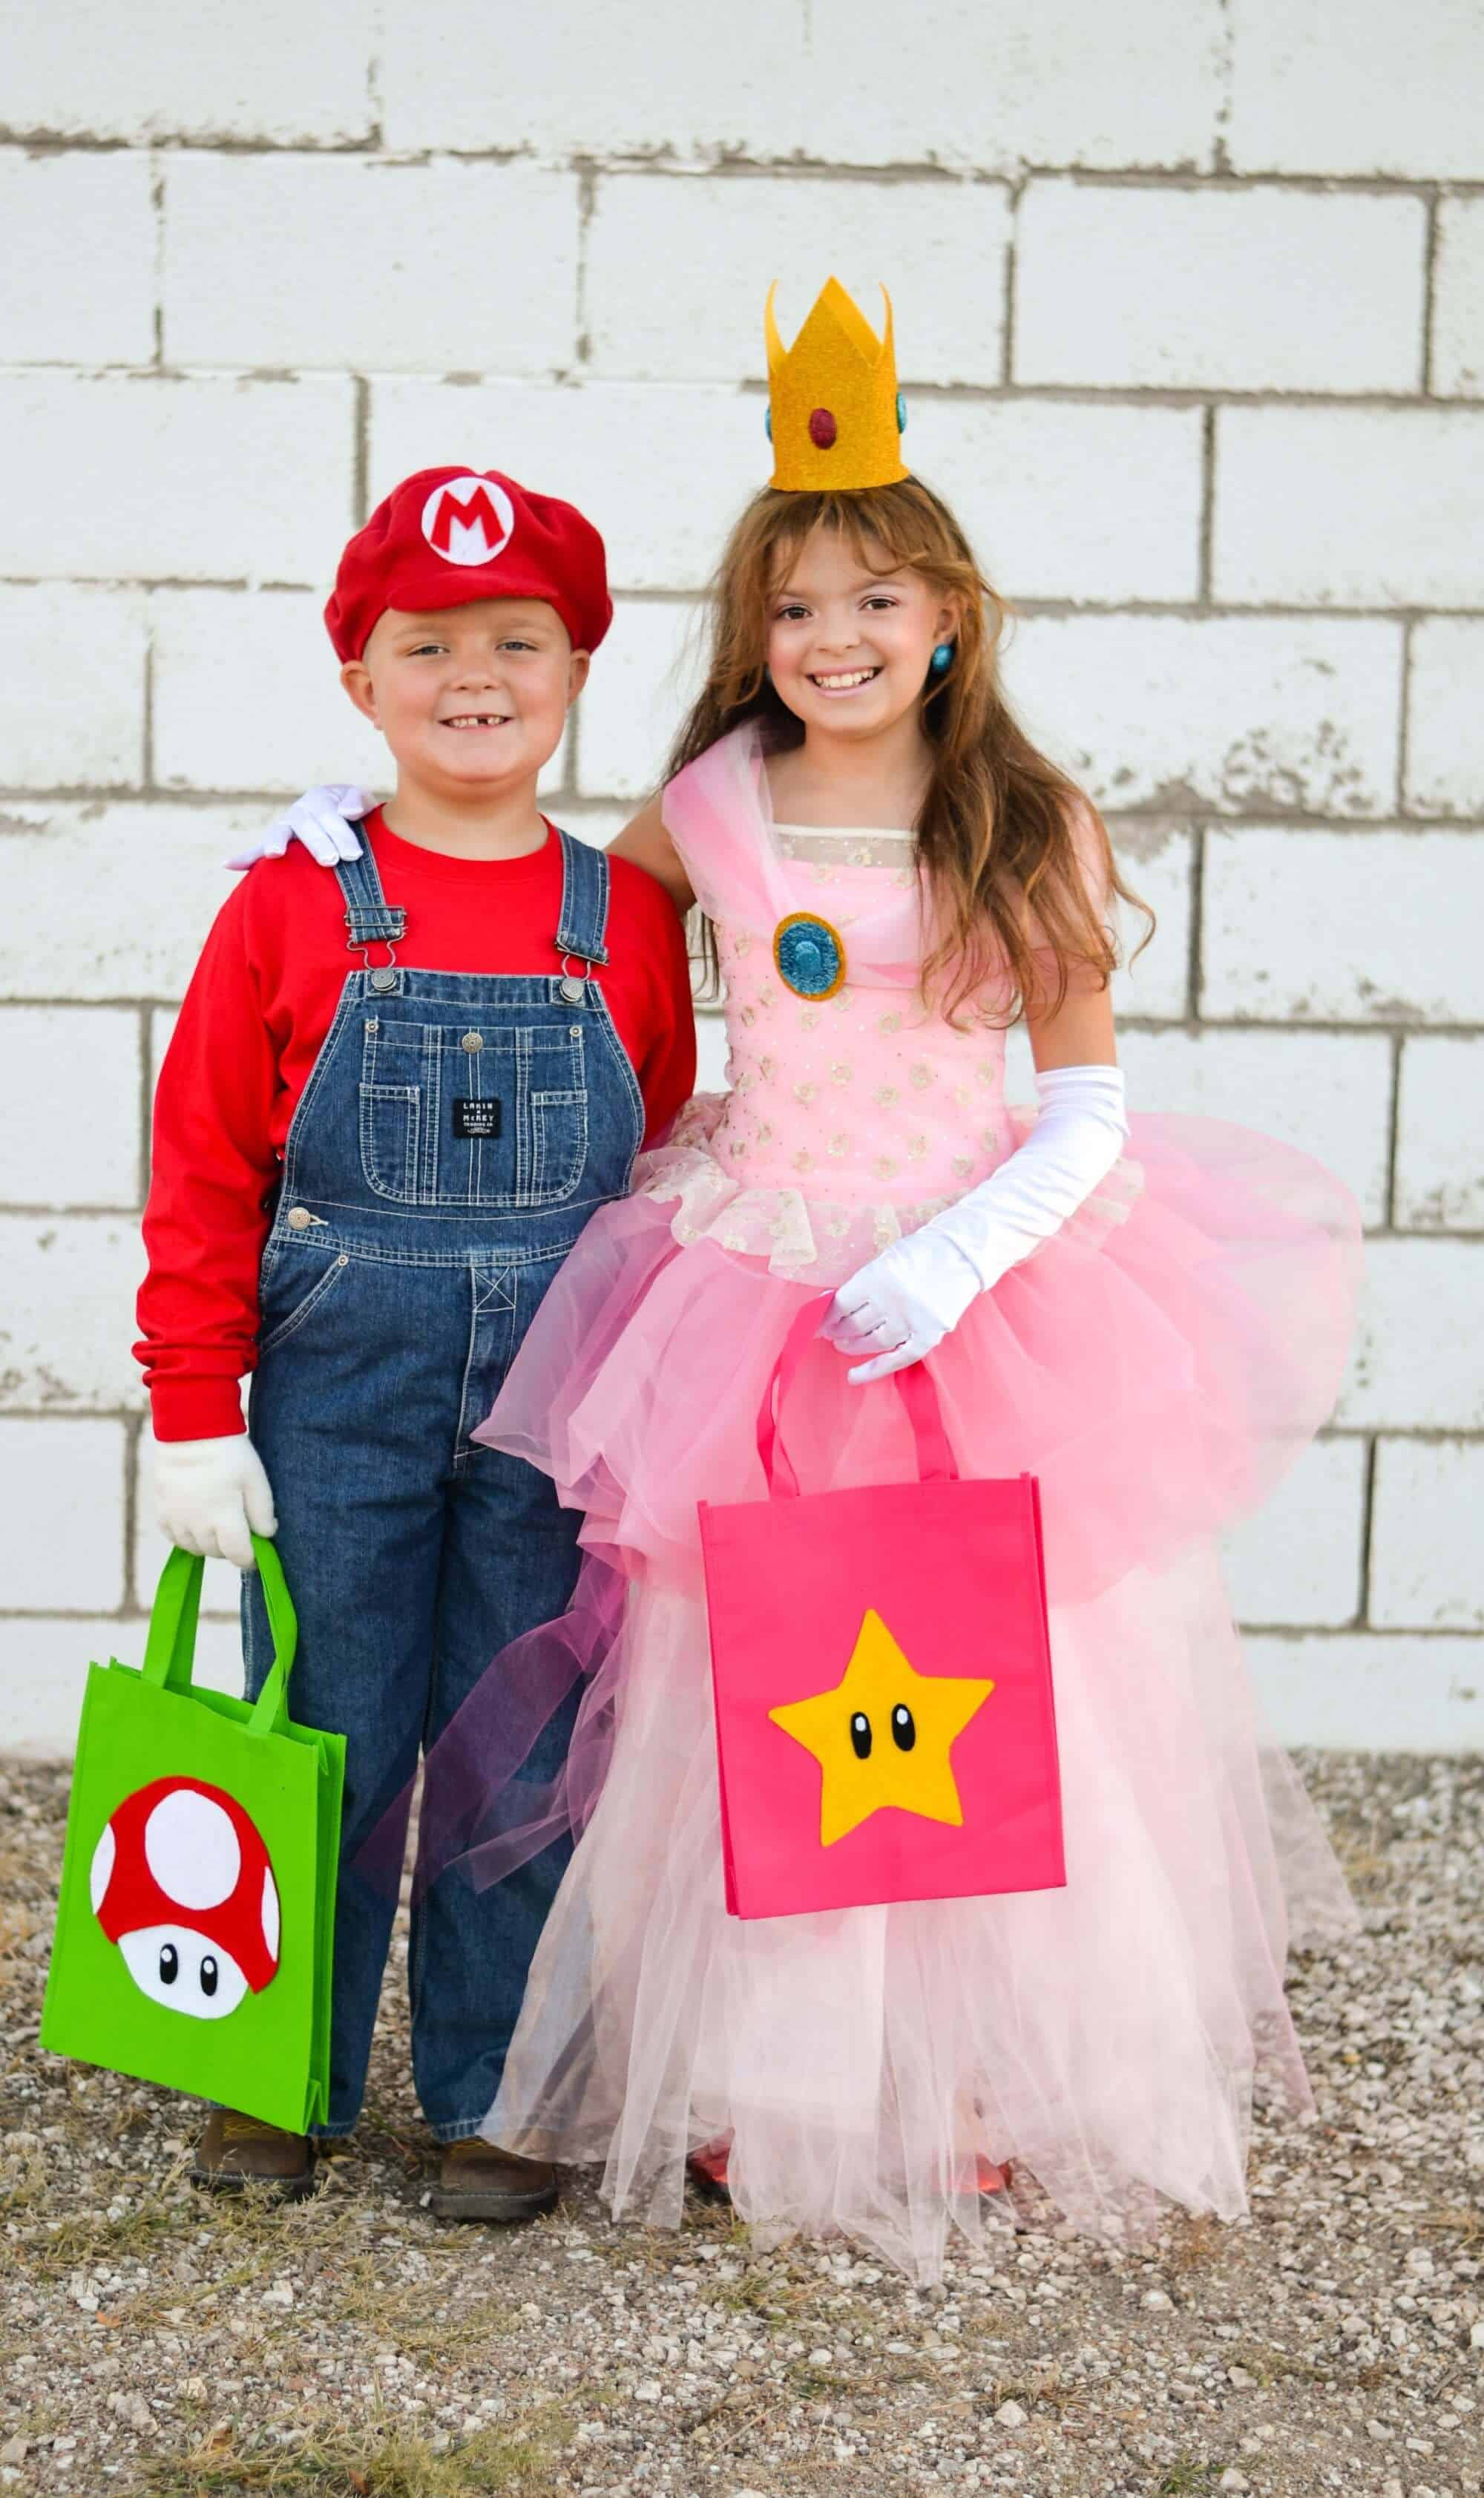 Mario and princess peach 1 of 1